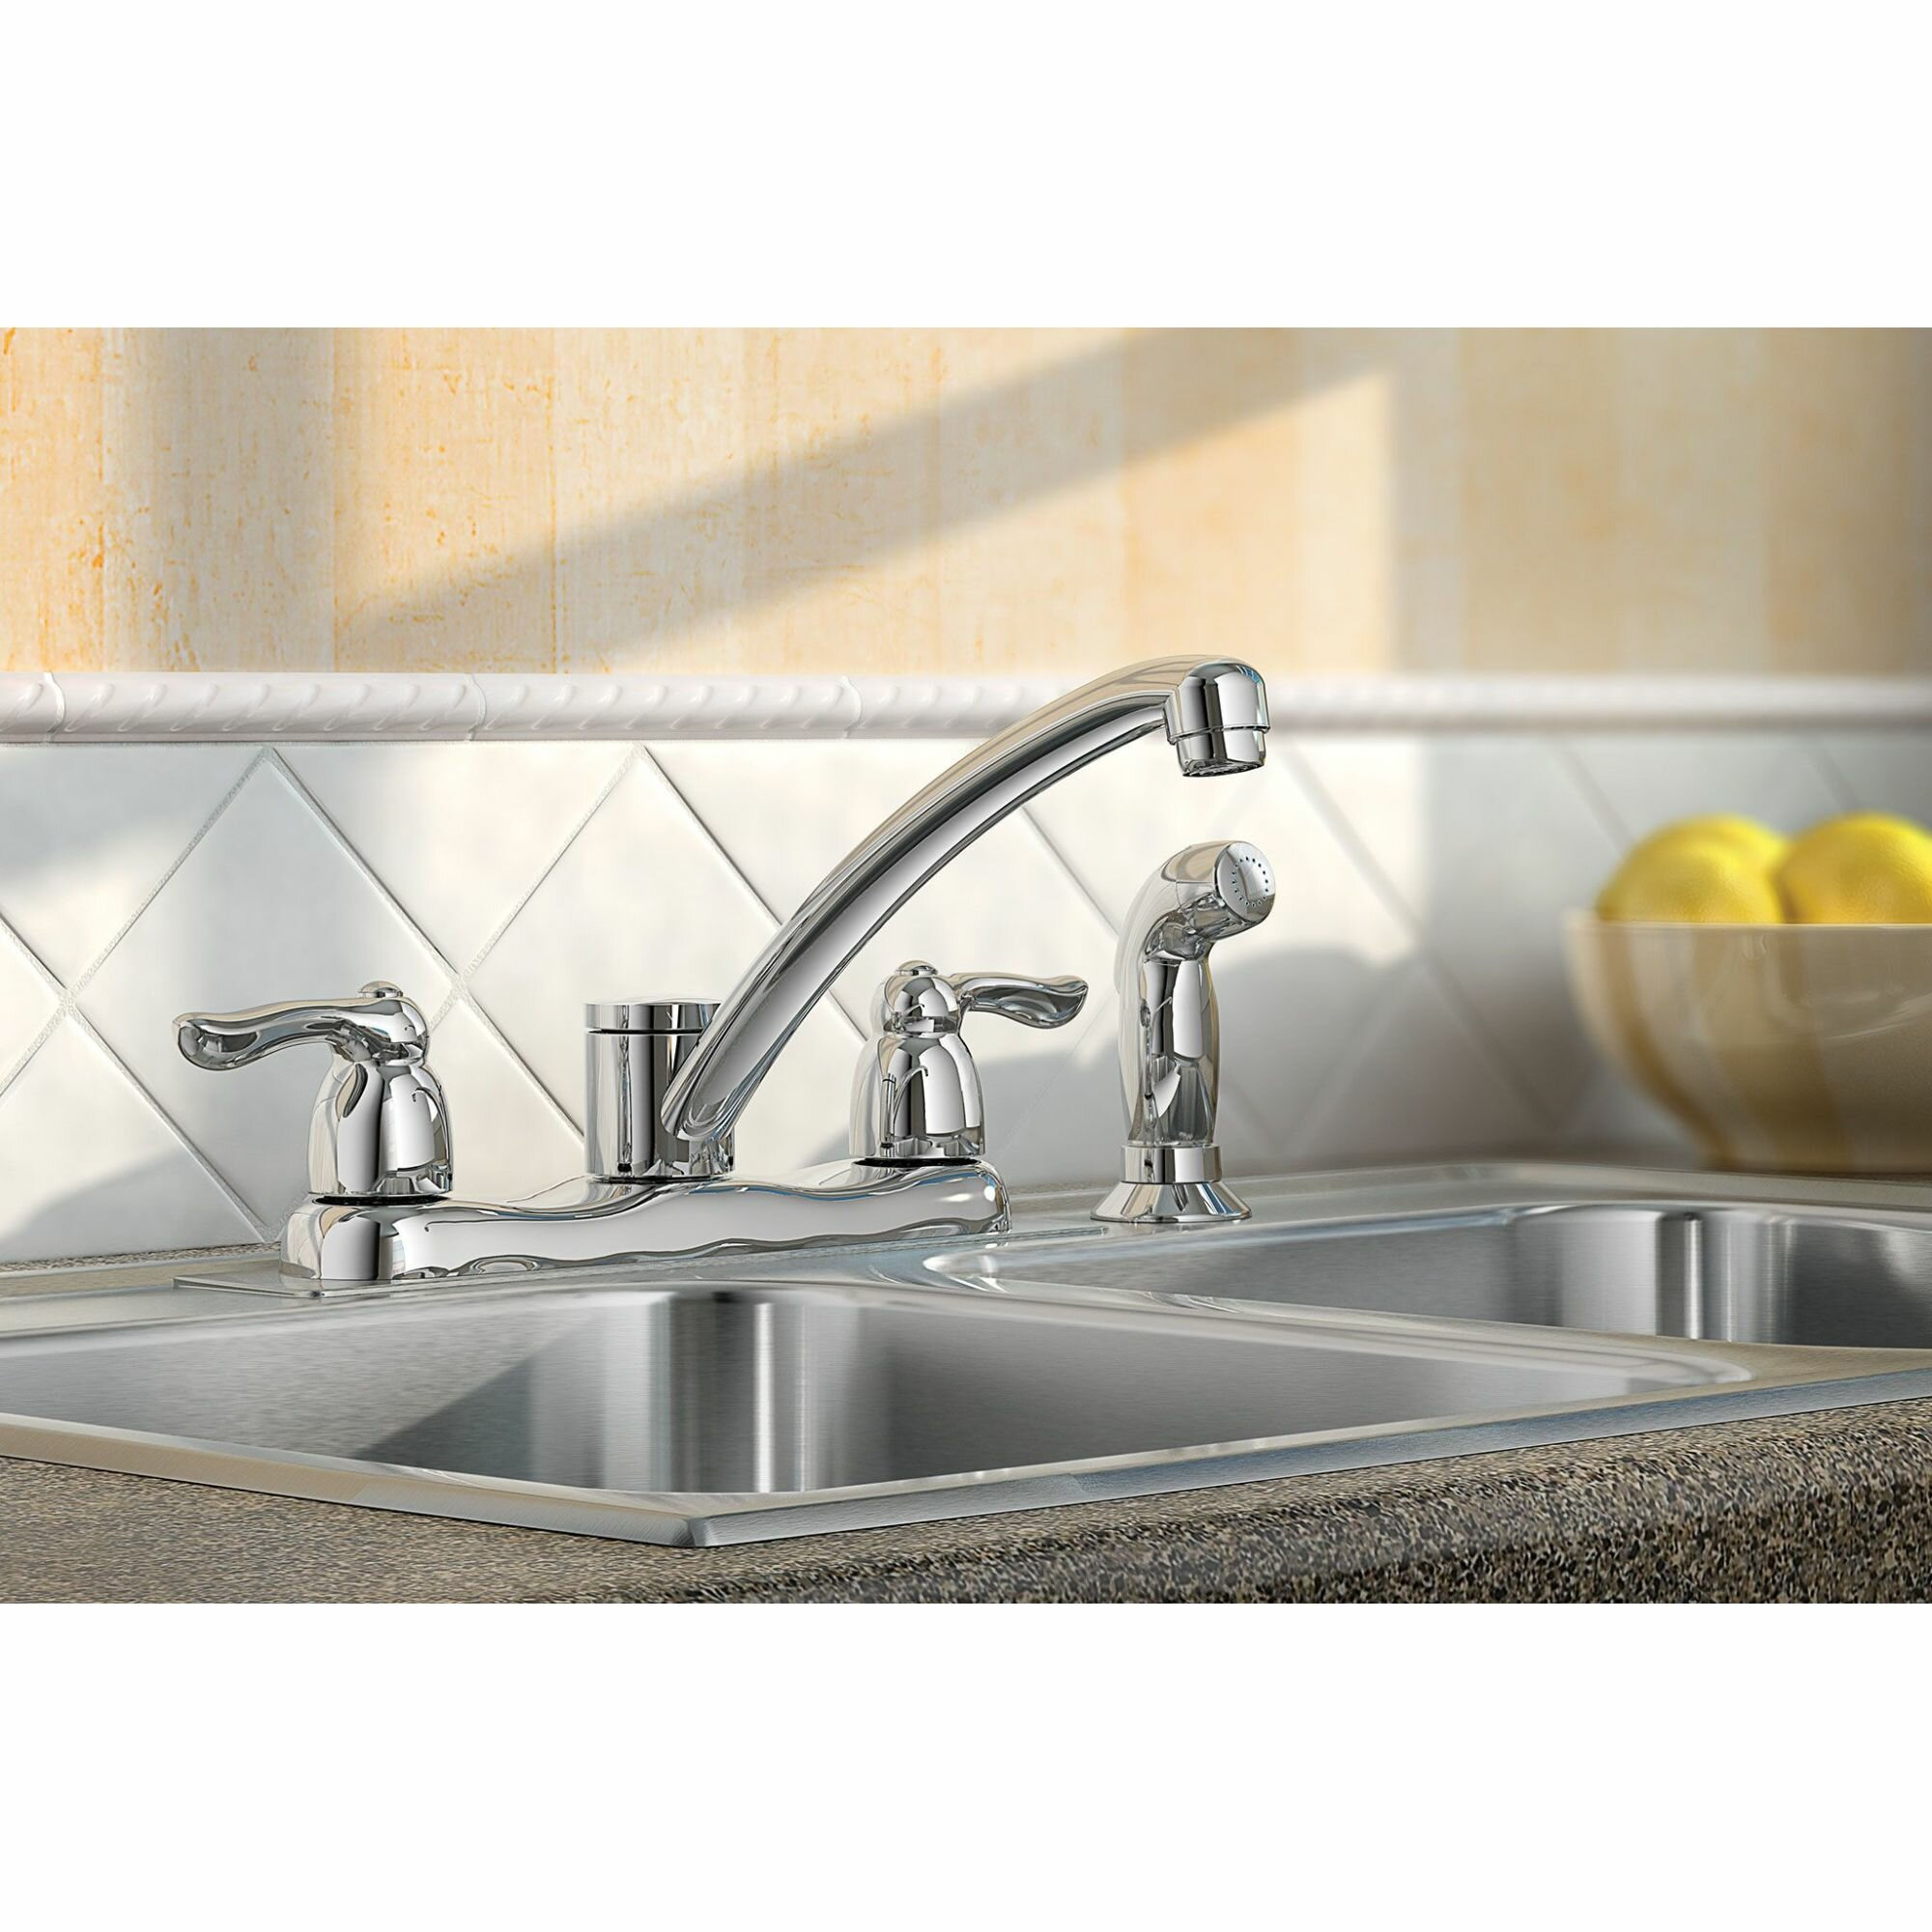 Moen Chateau Double Handle Kitchen Faucet With Side Spray And Duralock Reviews